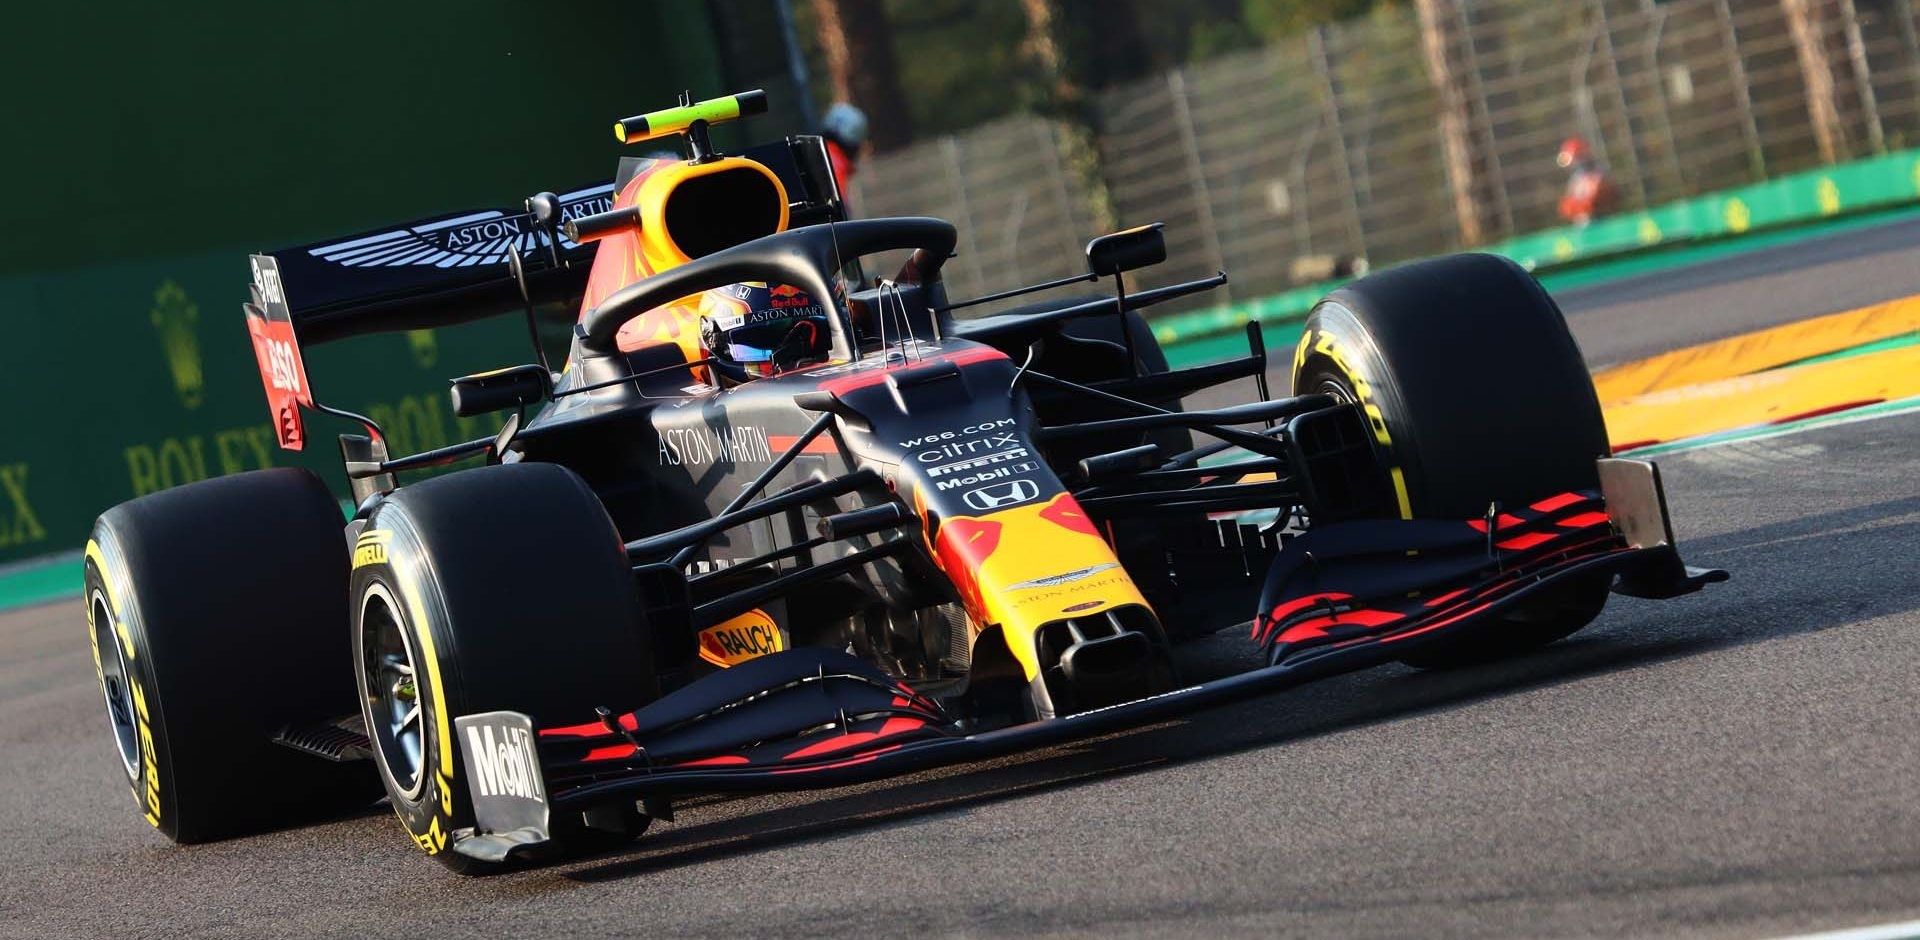 IMOLA, ITALY - OCTOBER 31: Alexander Albon of Thailand driving the (23) Aston Martin Red Bull Racing RB16 on track during qualifying ahead of the F1 Grand Prix of Emilia Romagna at Autodromo Enzo e Dino Ferrari on October 31, 2020 in Imola, Italy. (Photo by Davide Gennari - Pool/Getty Images)